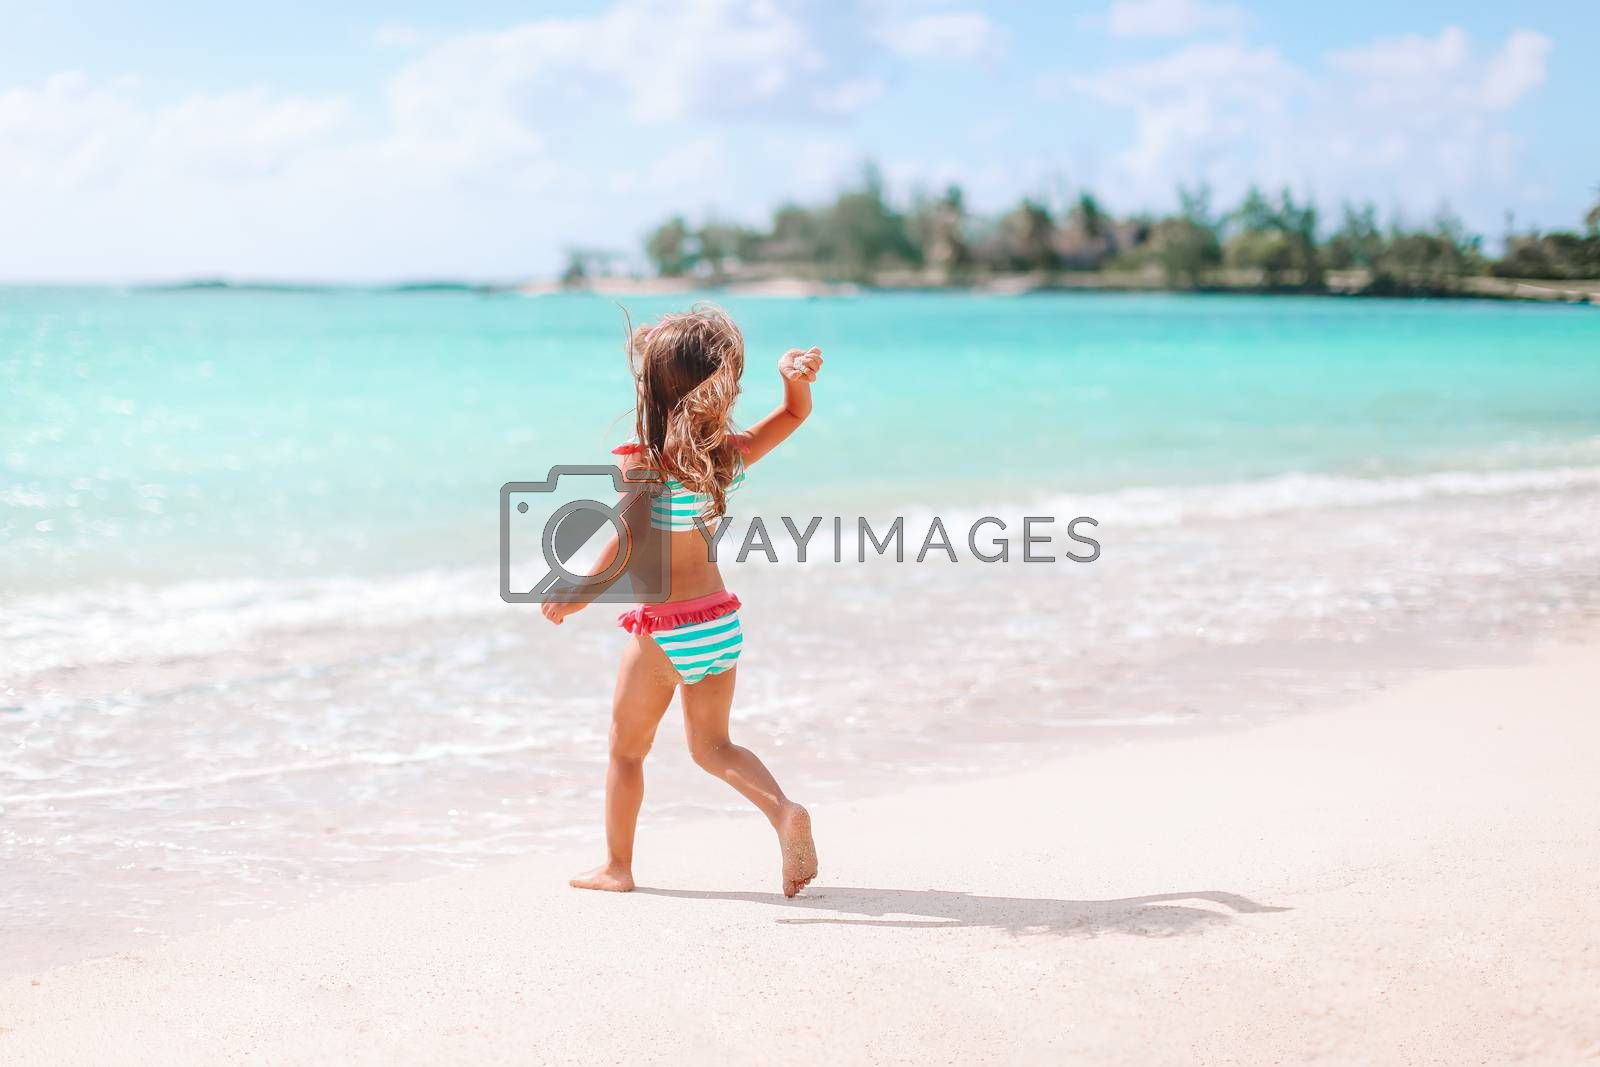 Little girl having fun at tropical beach during summer vacation playing at shallow water.